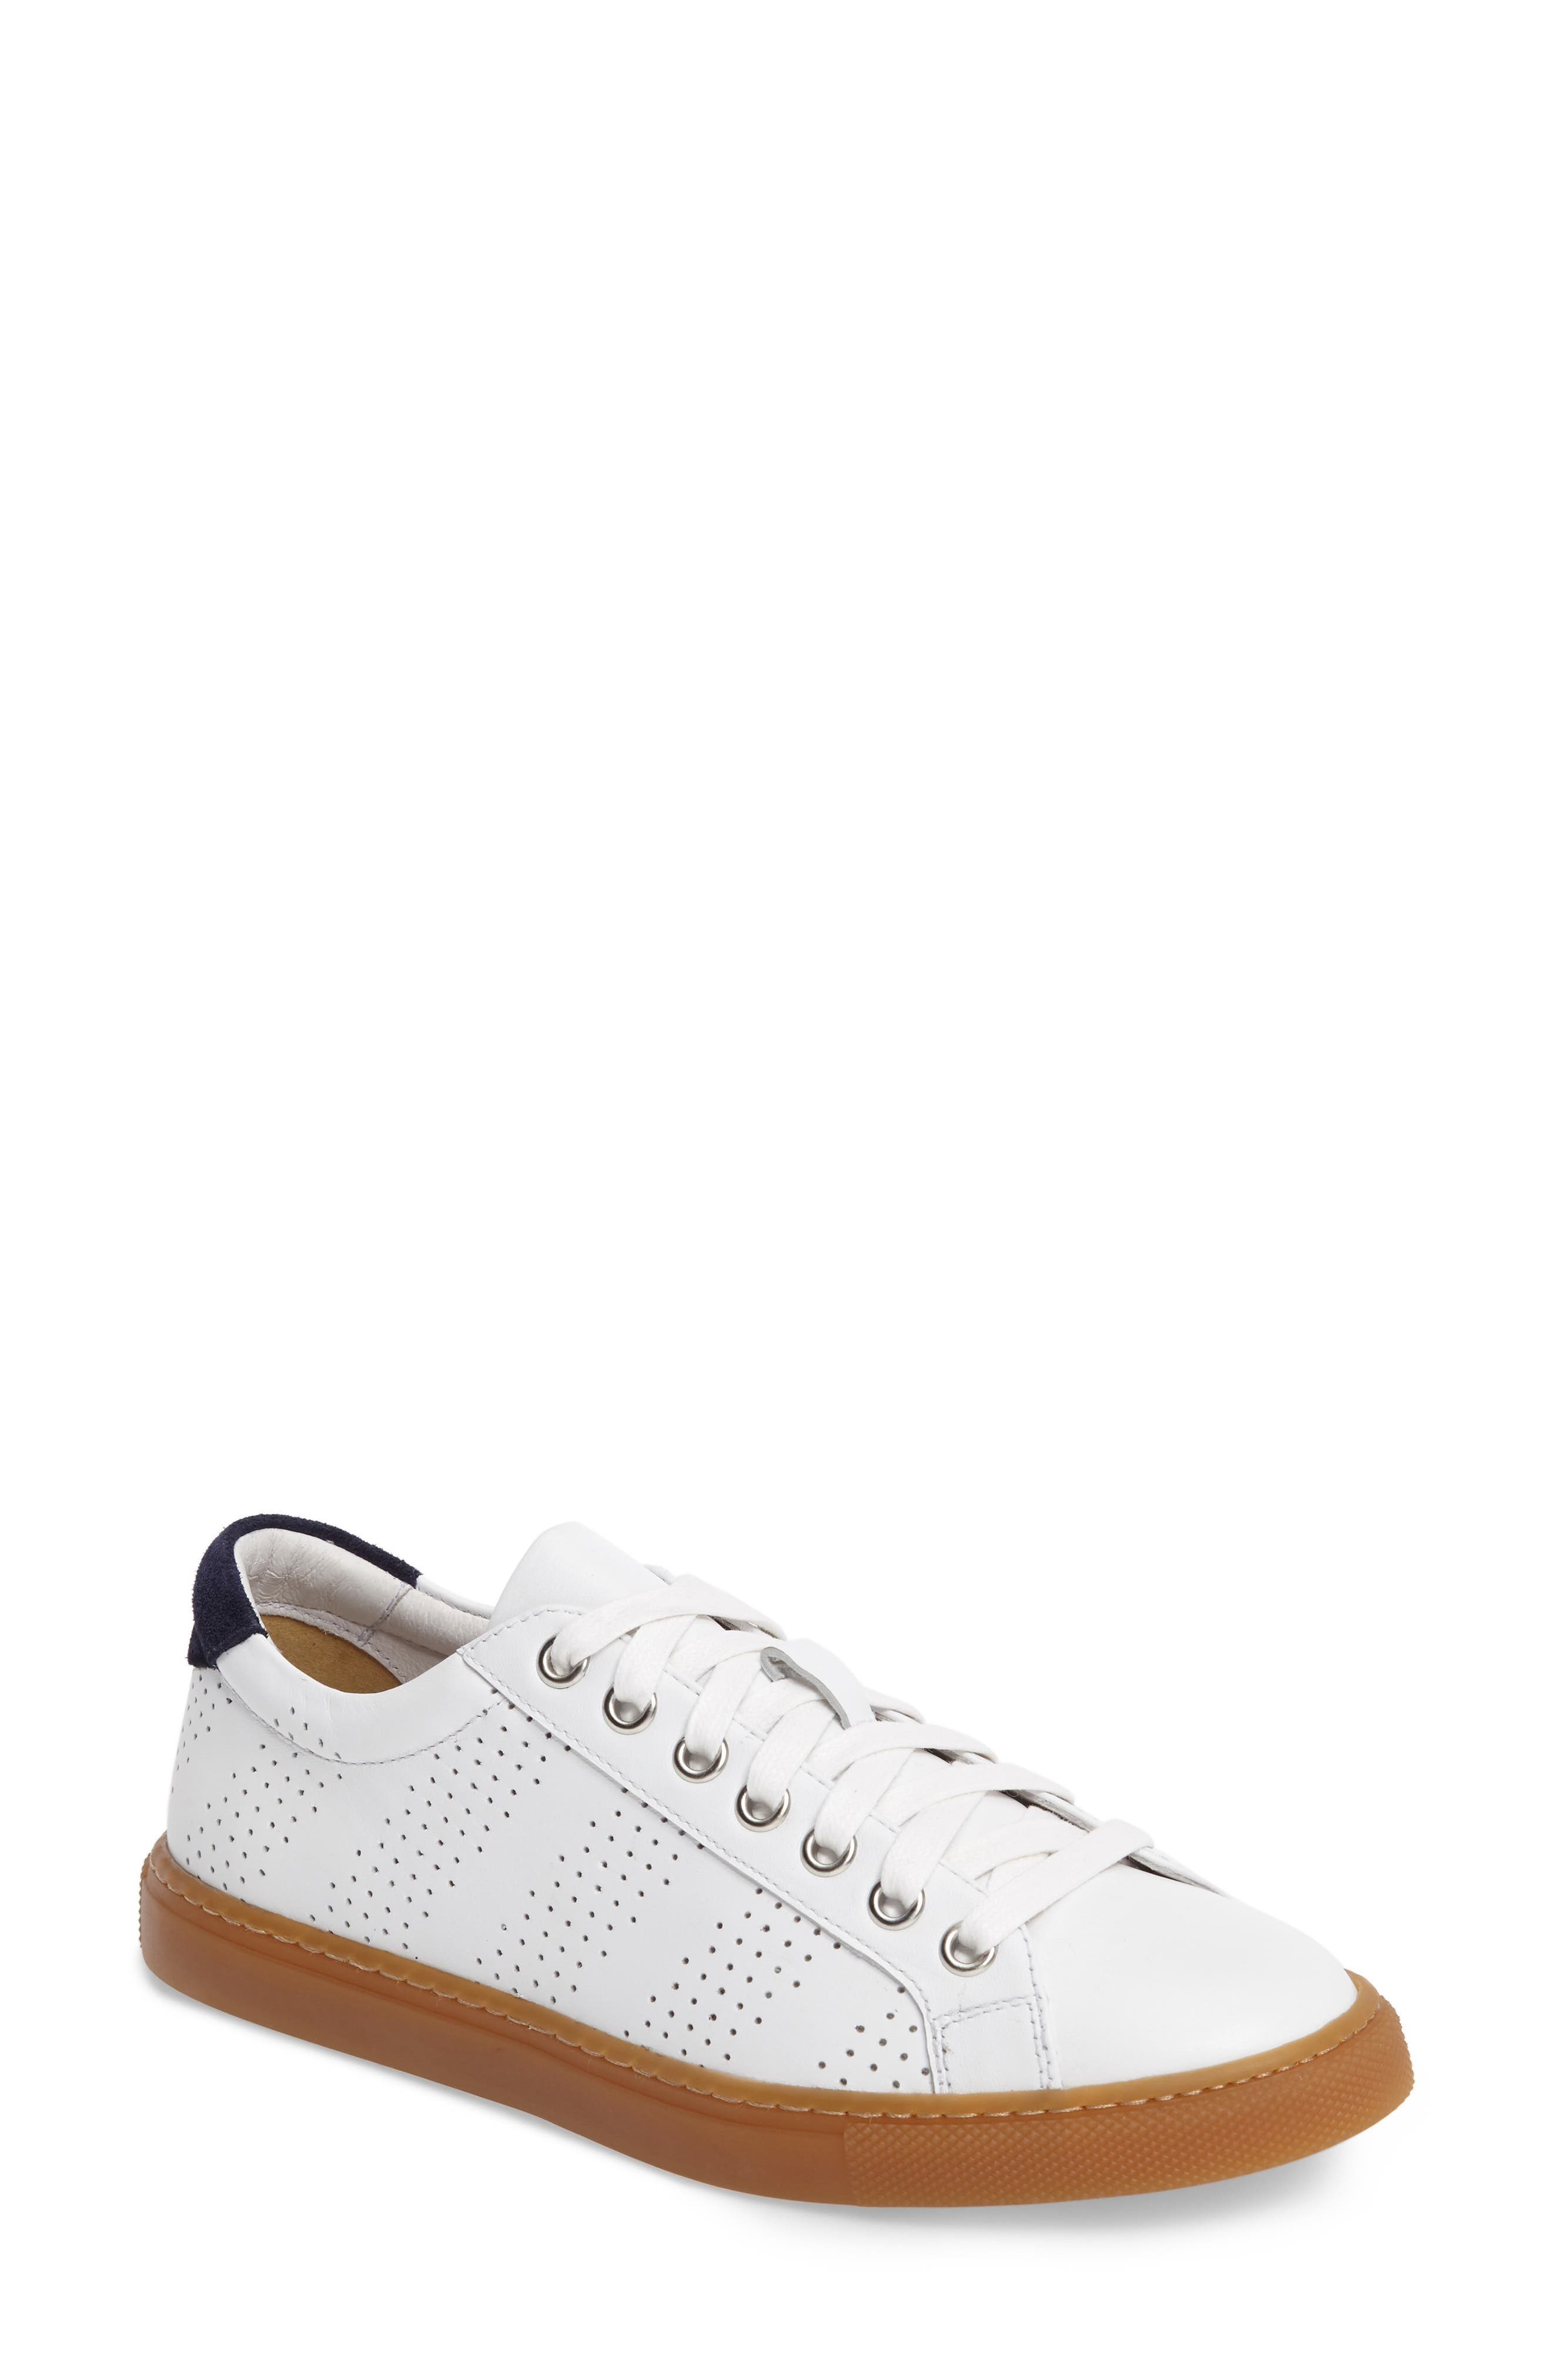 Main Image - Treasure & Bond Merrick Perforated Sneaker (Women)